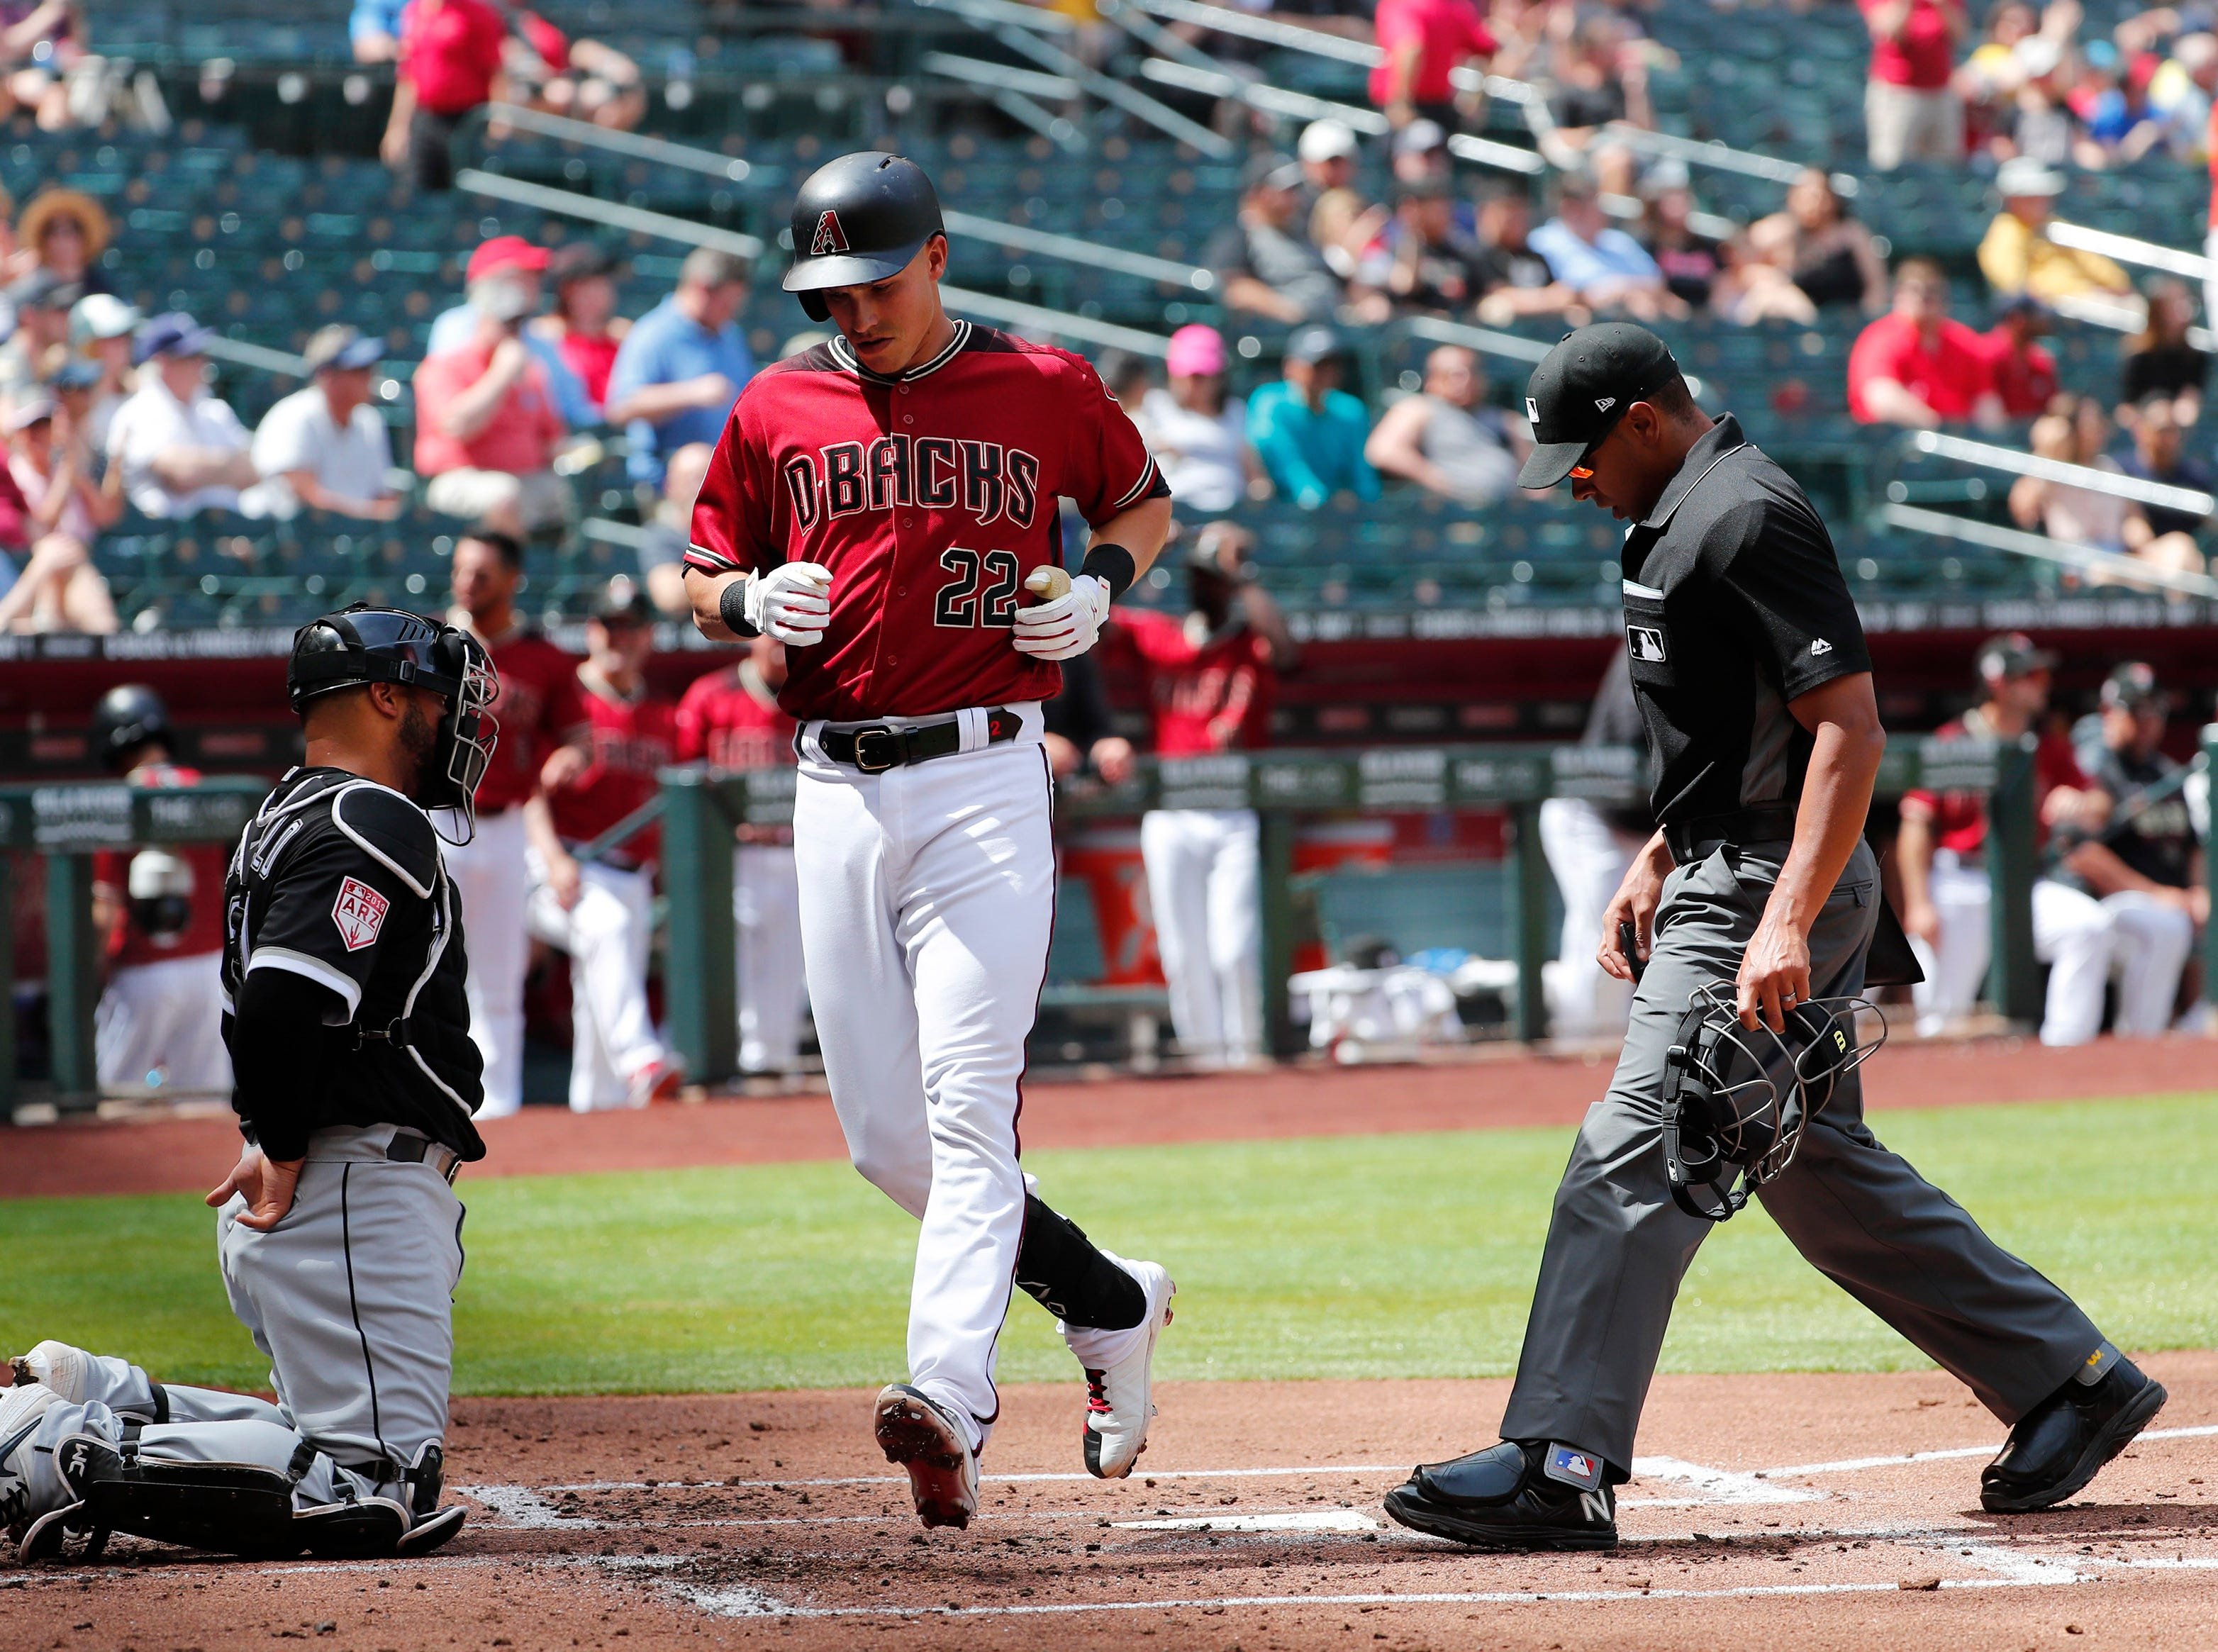 Arizona Diamondbacks first baseman Jake Lamb (22) crosses home plate after hitting a solo home run against the Chicago White Sox during spring training action at Chase Field March 26, 2019.